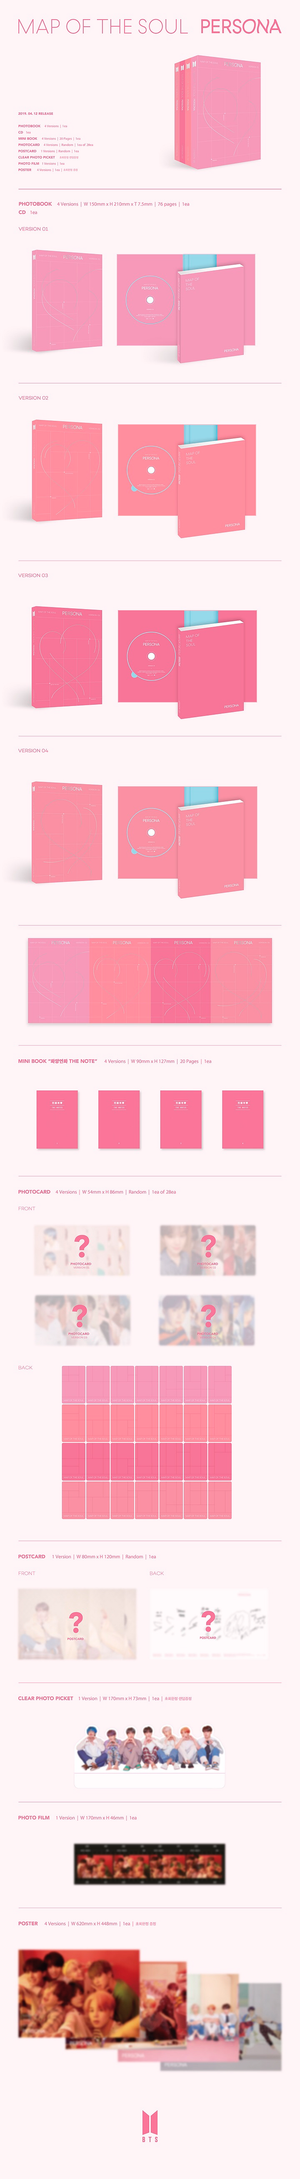 [BTS] MAP OF THE SOUL: PERSONA Album - Kpop FTW